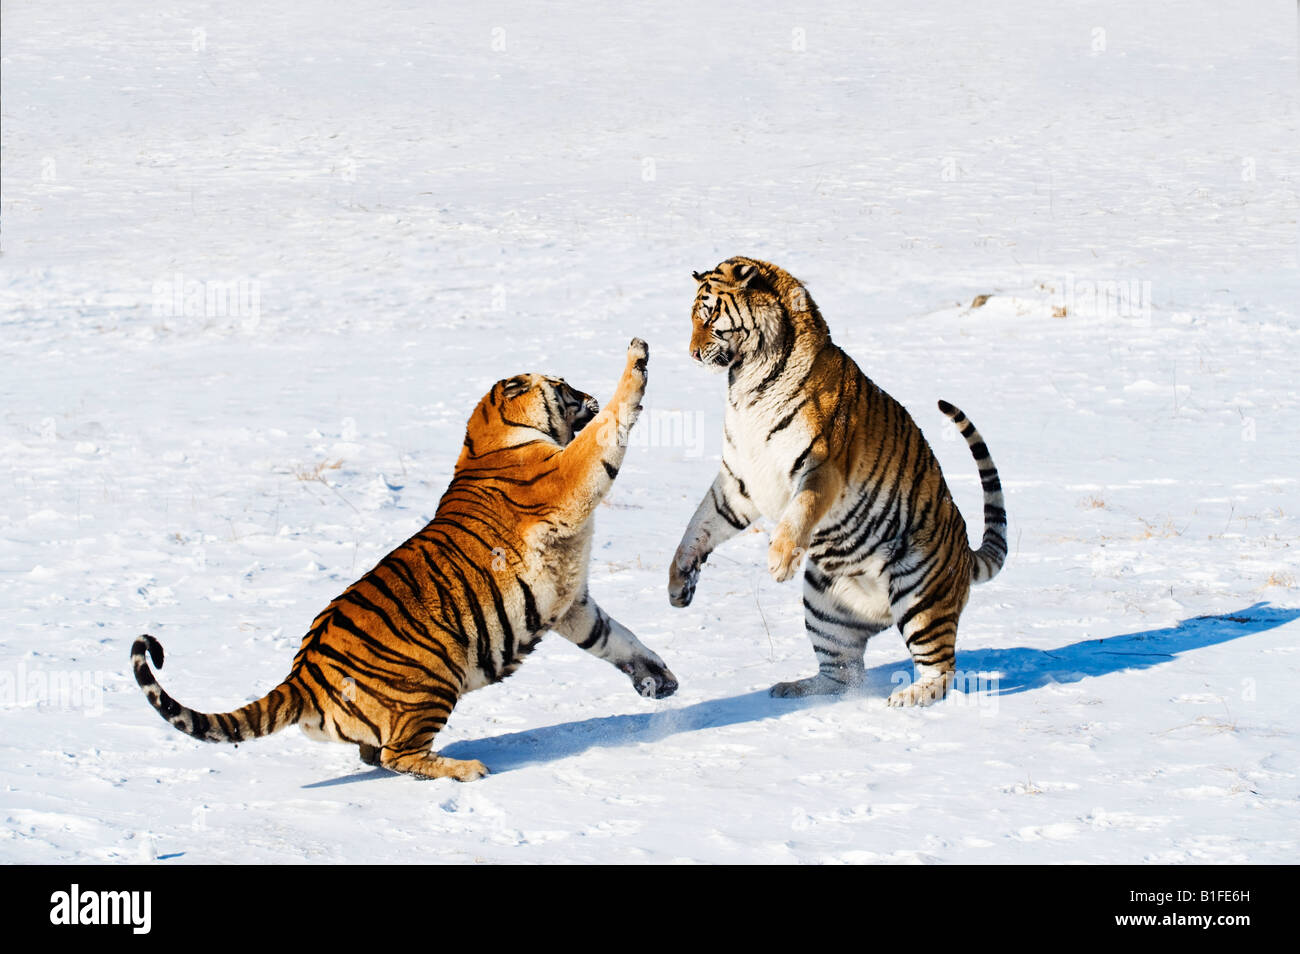 Siberian Tigers fighting in the snow China Stock Photo